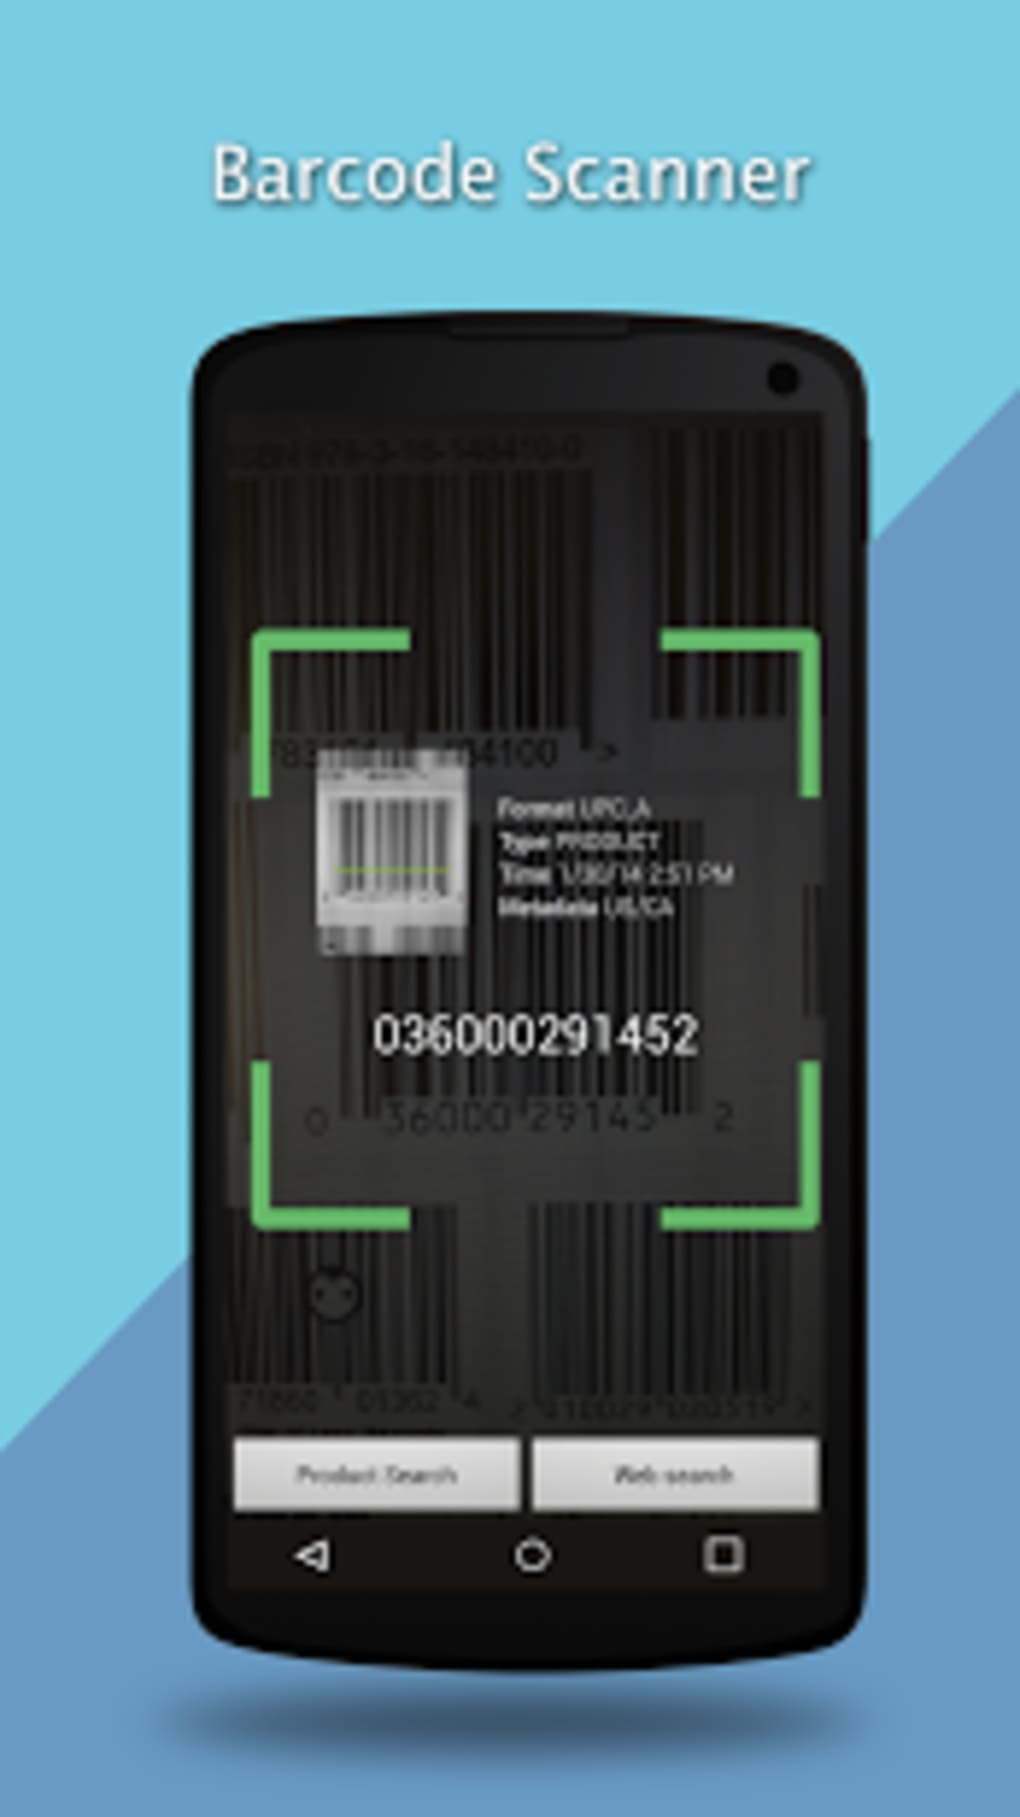 QR Code Scan & Barcode Scanner for Android - Download